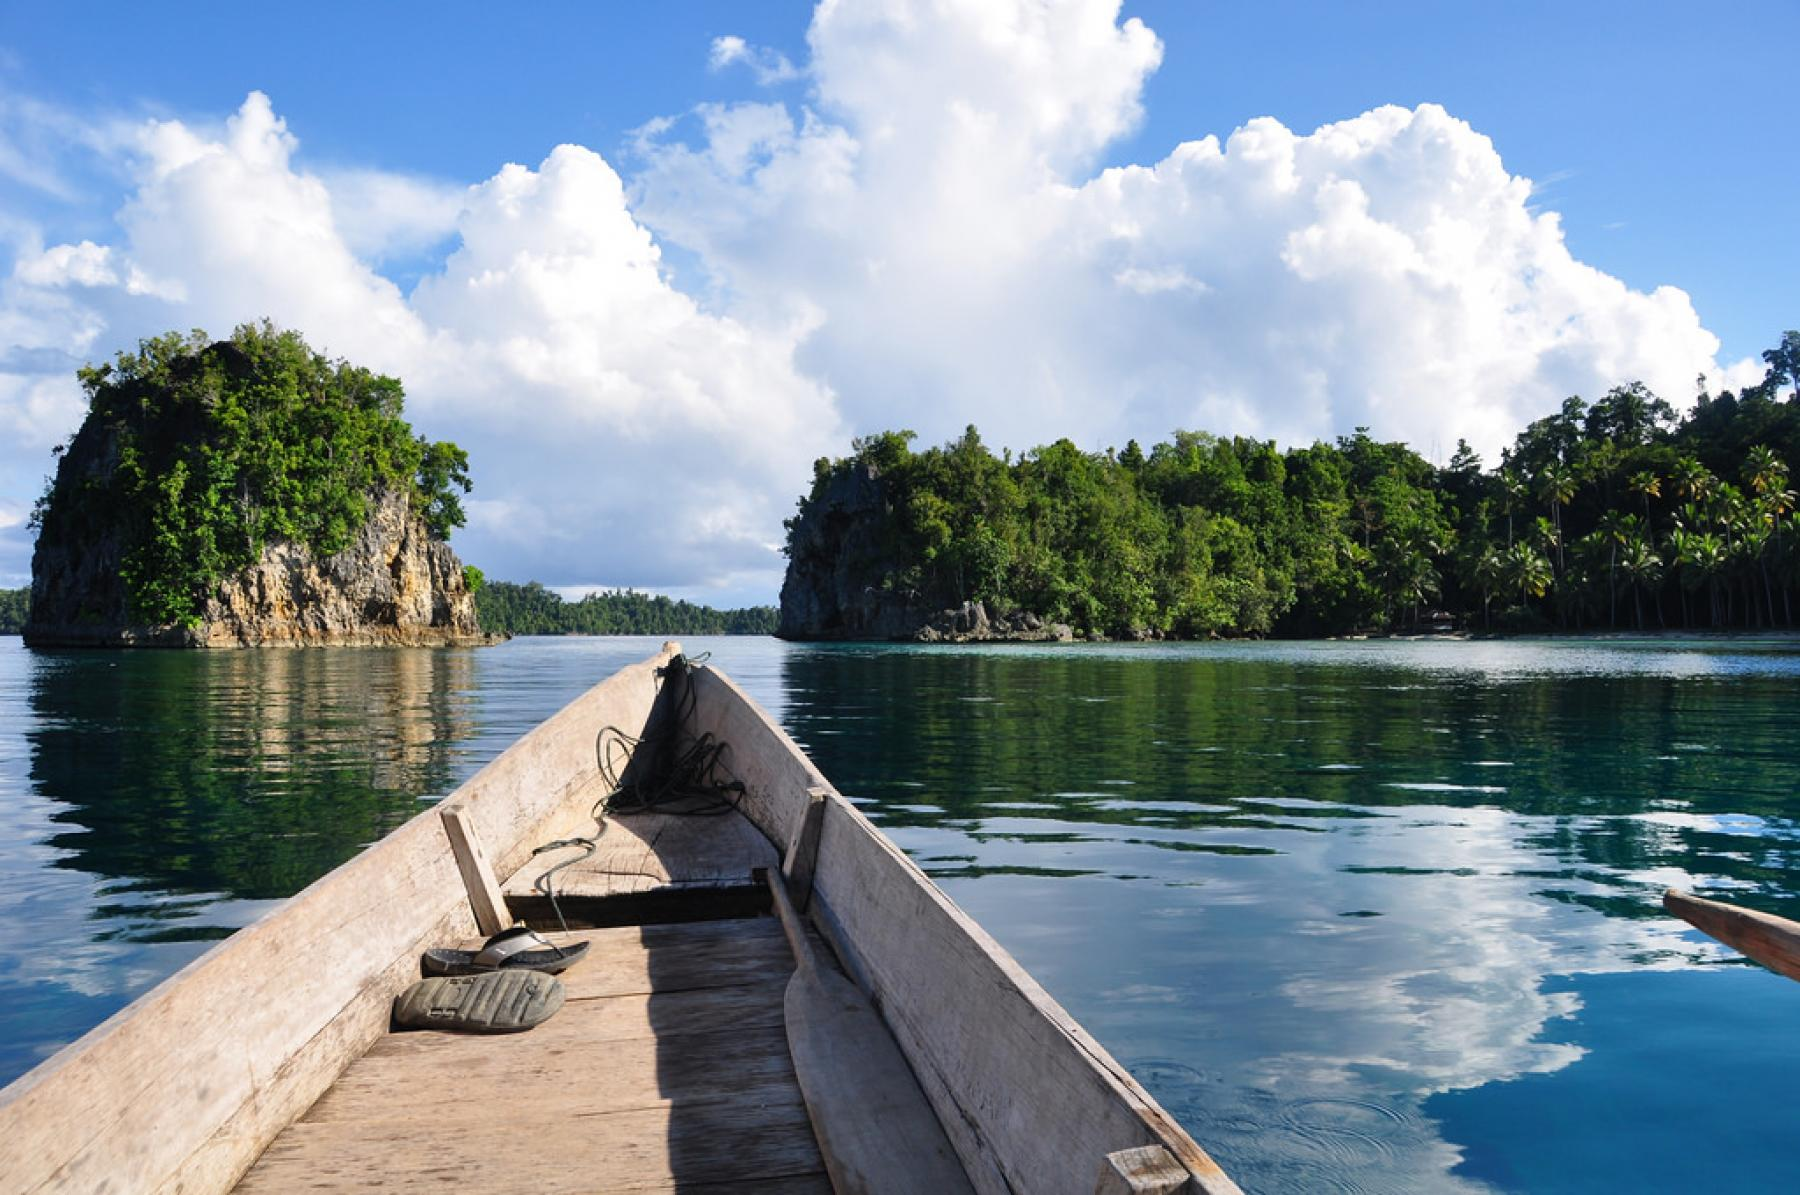 Let's Meet the See Gypsies and Swim with the Stingless Jelly Fish - 7D/6N Trip starting at Togean, Tojo Una-Una Regency, Central Sulawesi, Indonesia